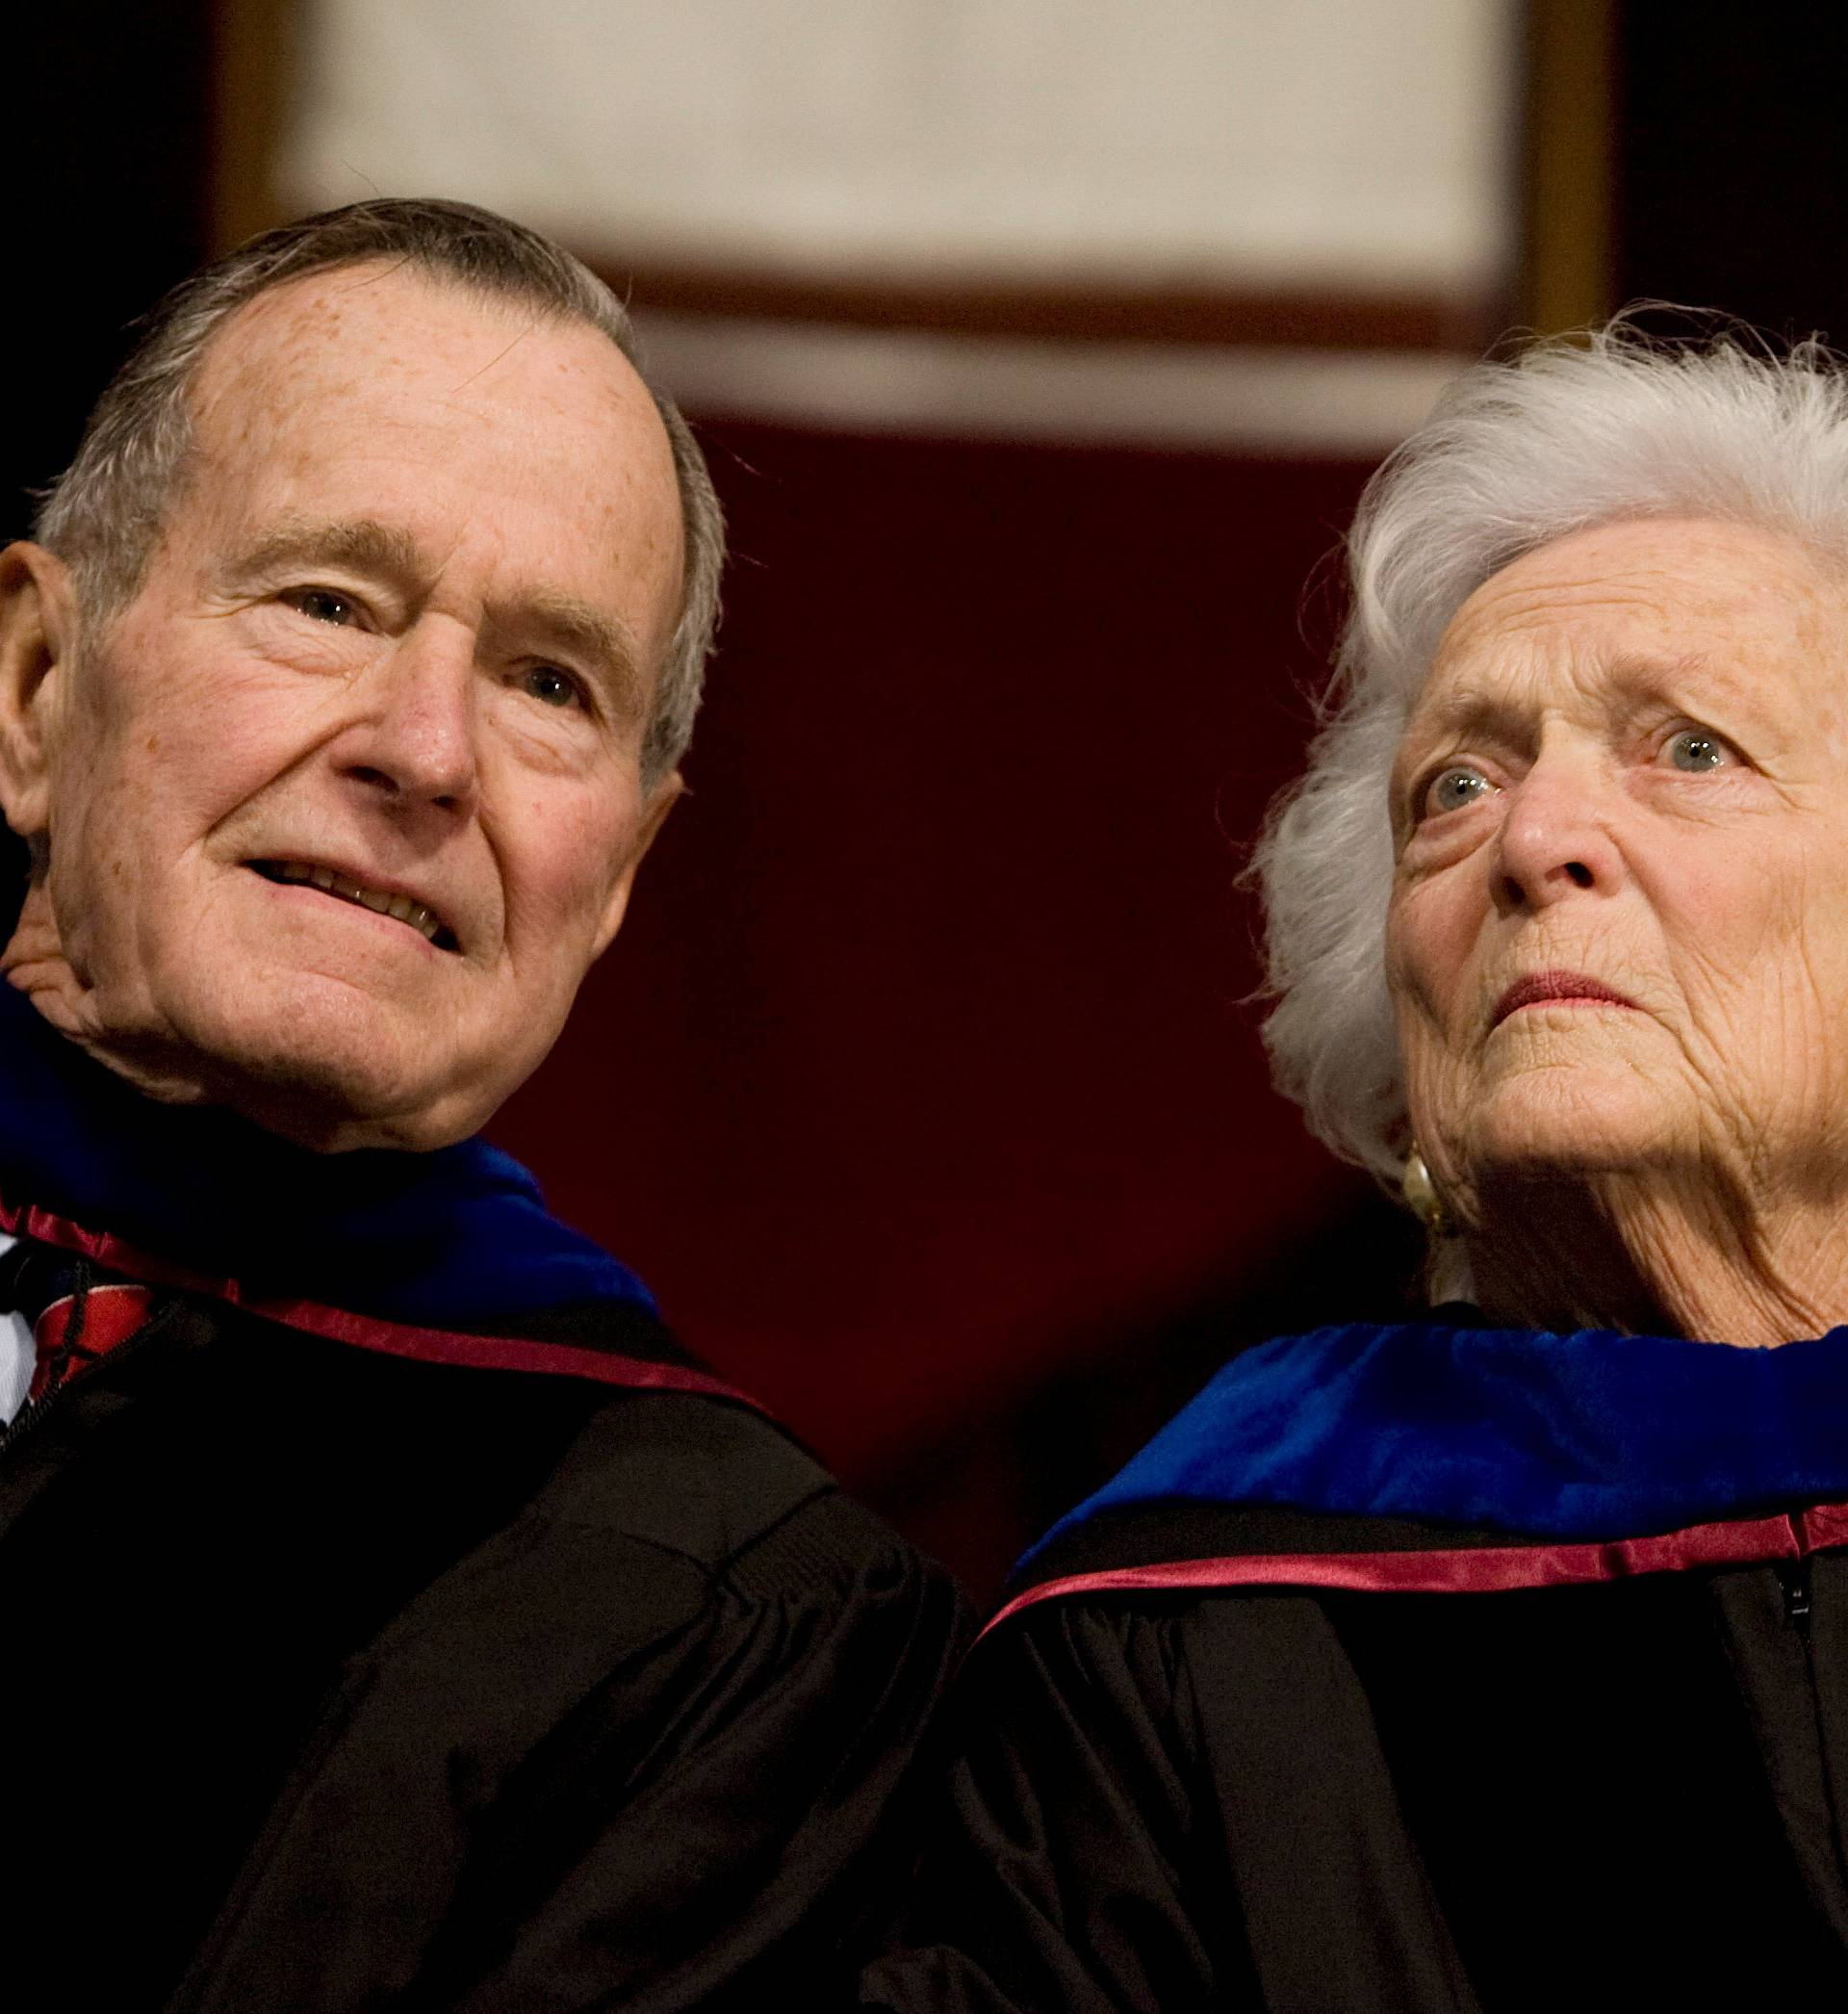 FILE PHOTO: Former President George H.W. Bush (L) and former first lady Barbara Bush attend the Texas A&M University commencement ceremony in College Station, Texas